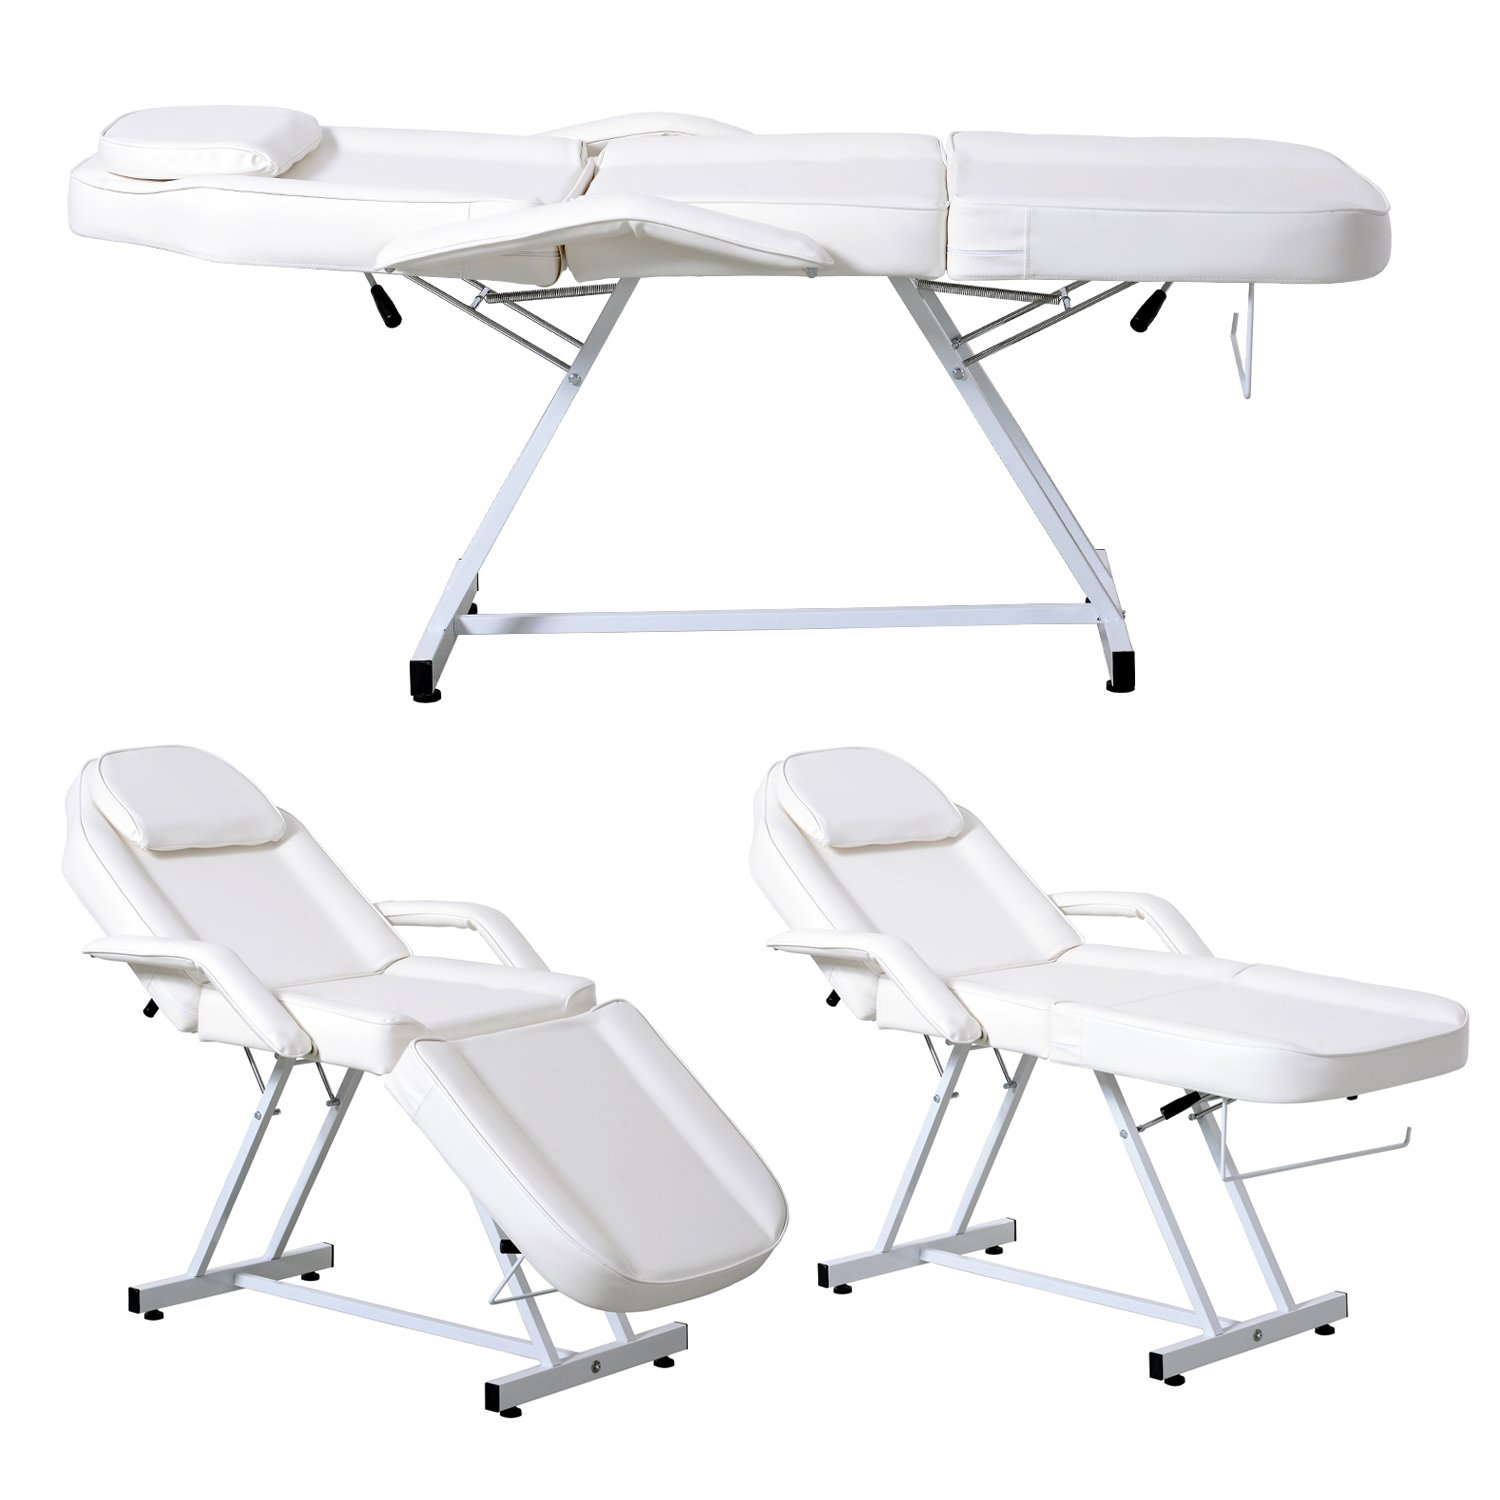 Spa Beds Tattoo Chair Adjustable Facial Massage Table Salon Personal Care Equipment by Freetrade